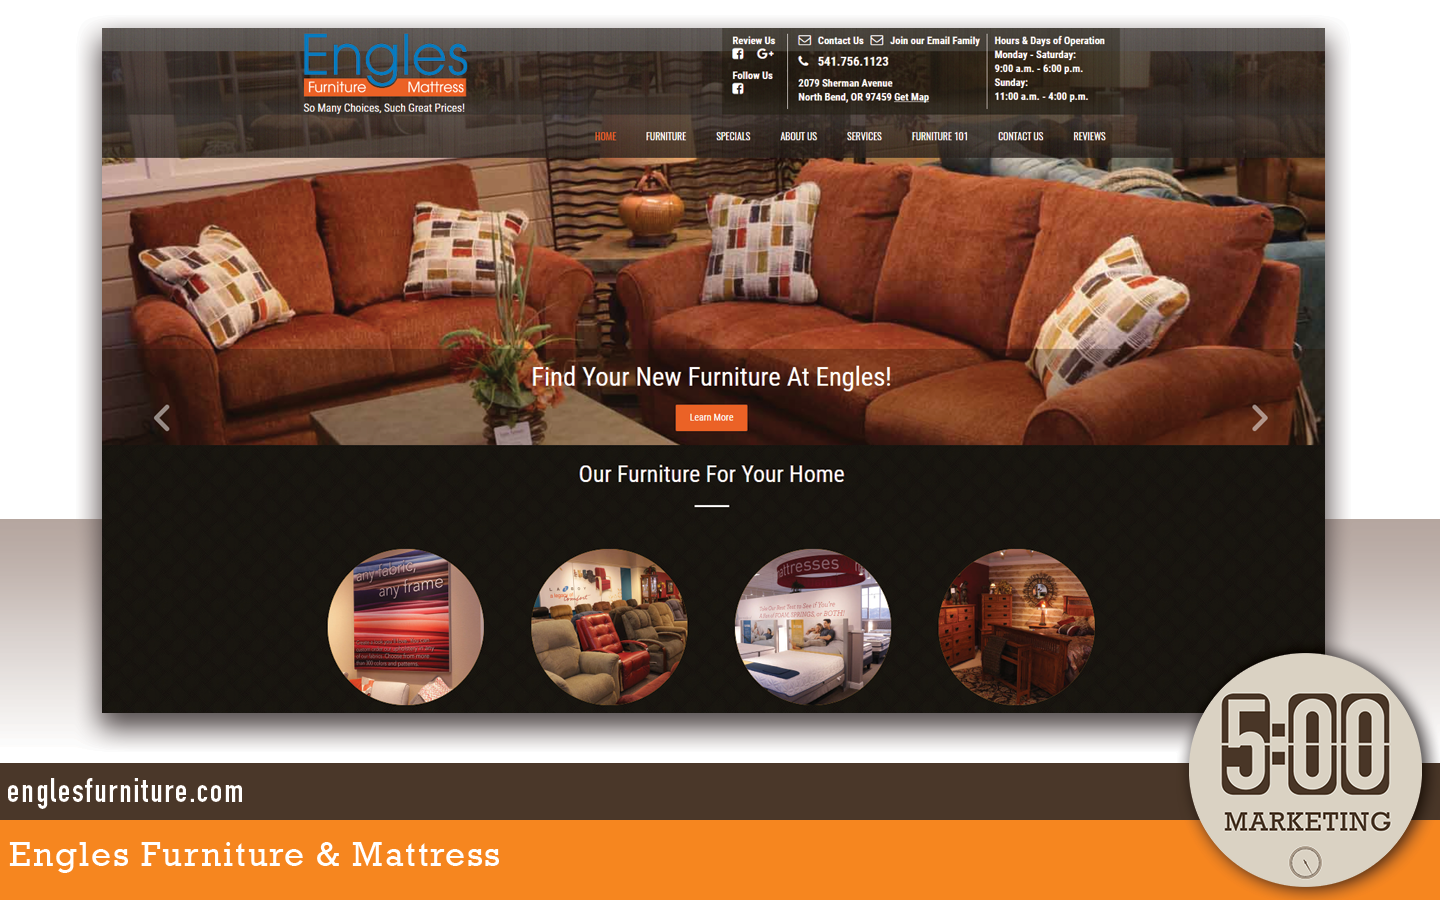 Engles Furniture & Mattress